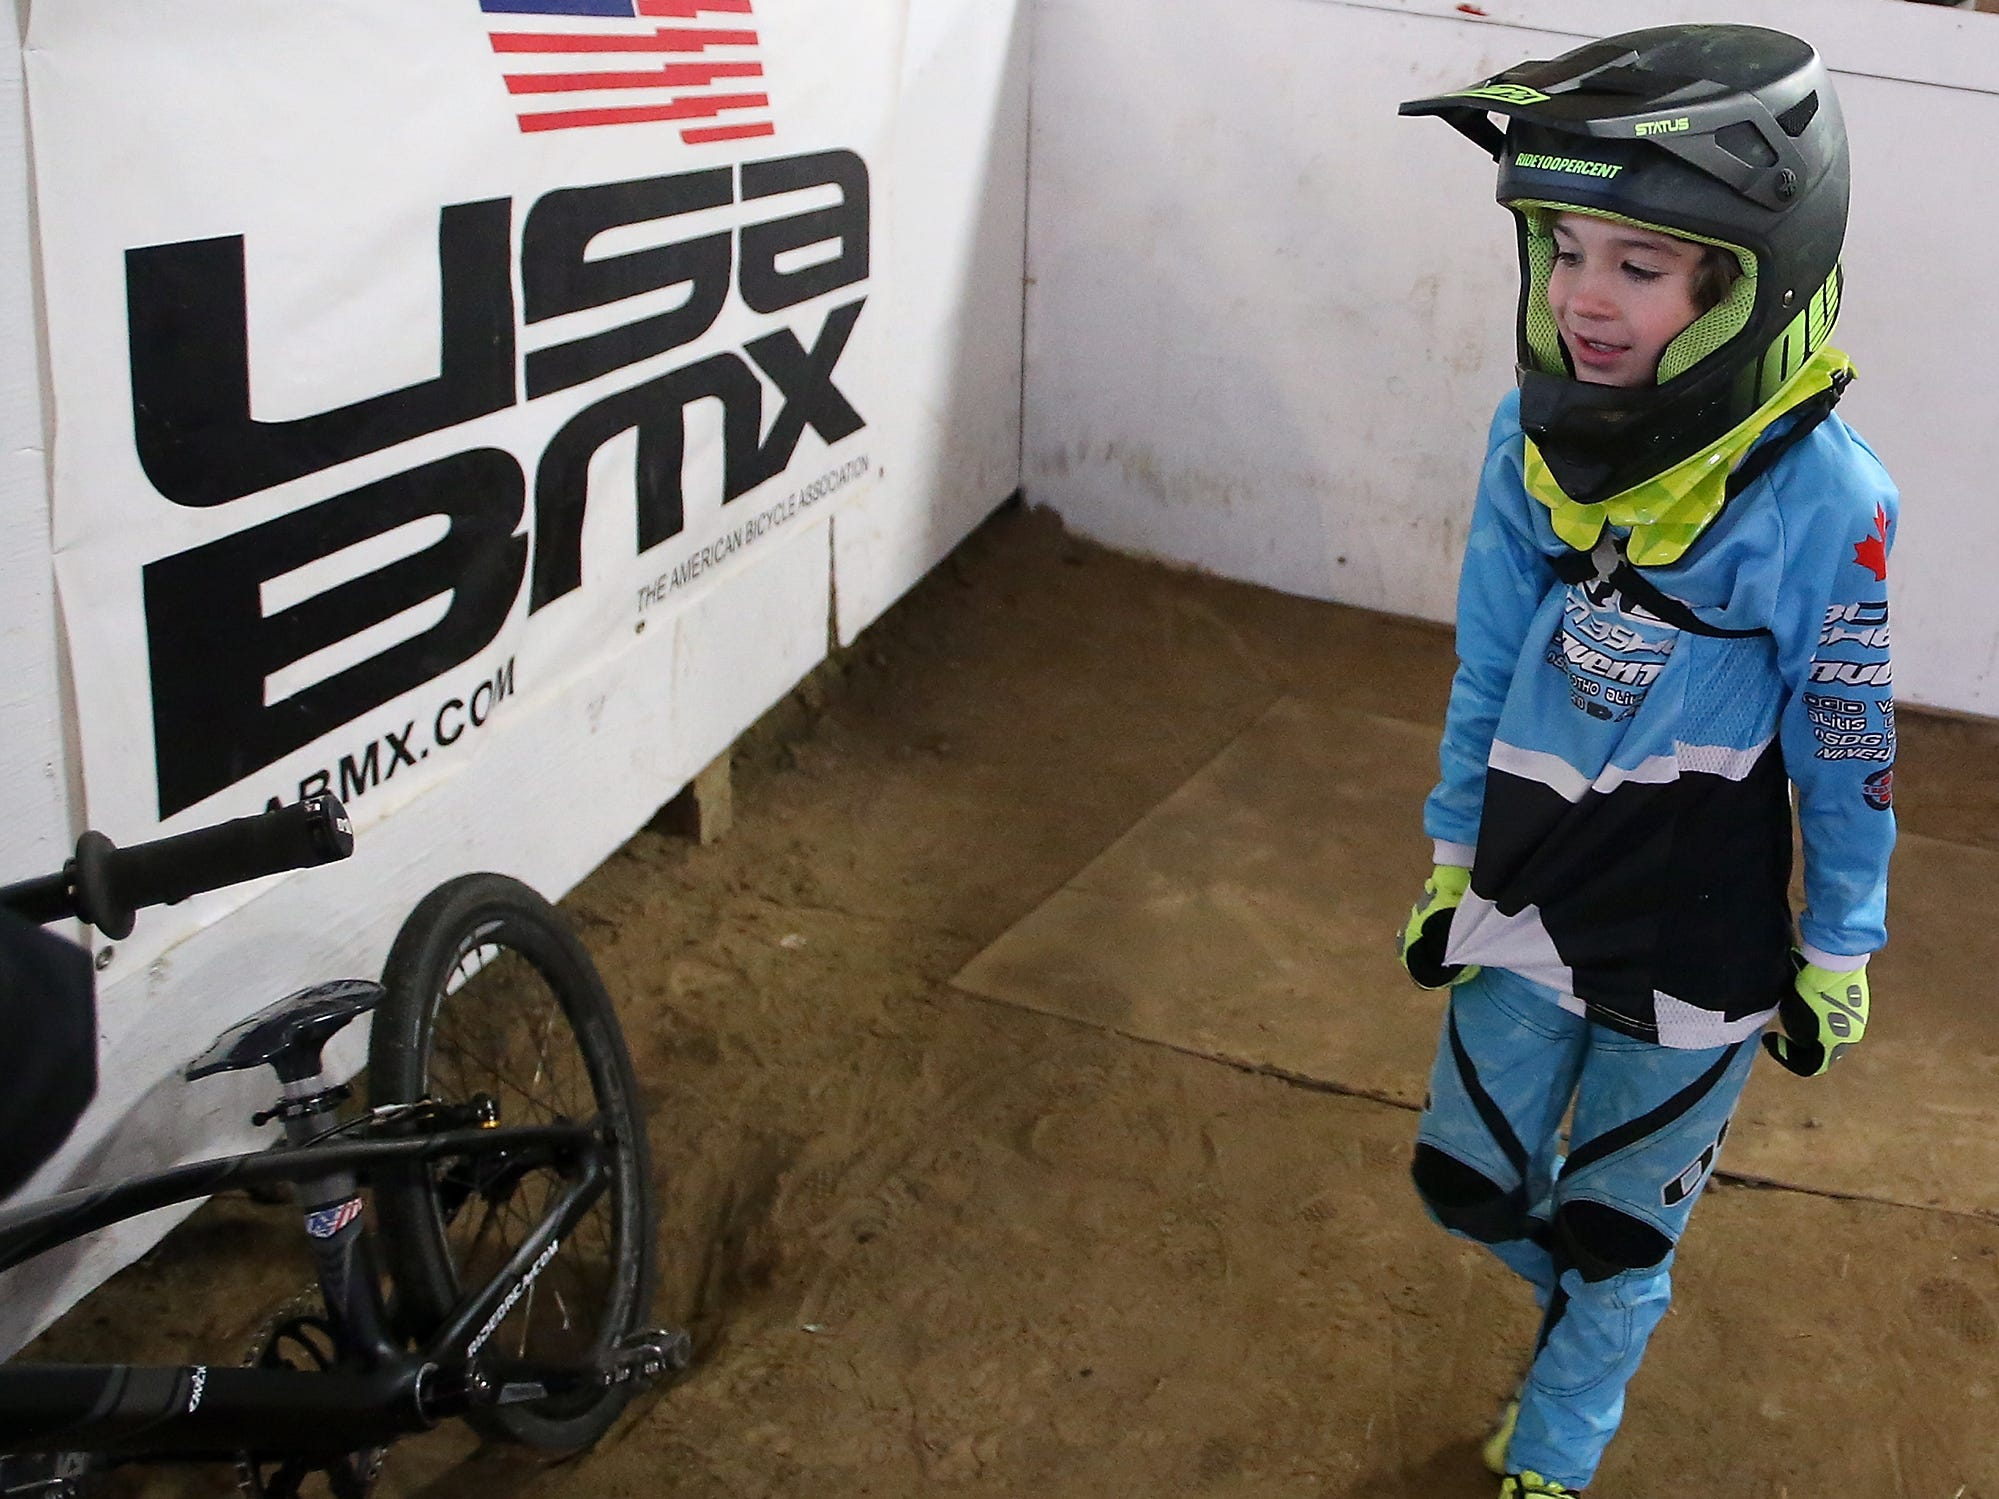 Wyatt Christensen, 6, of Kingston, gets ready to jump on a bike to ride the track at Peninsula Indoor BMX in Port Orchard on Saturday, December 8, 2018.